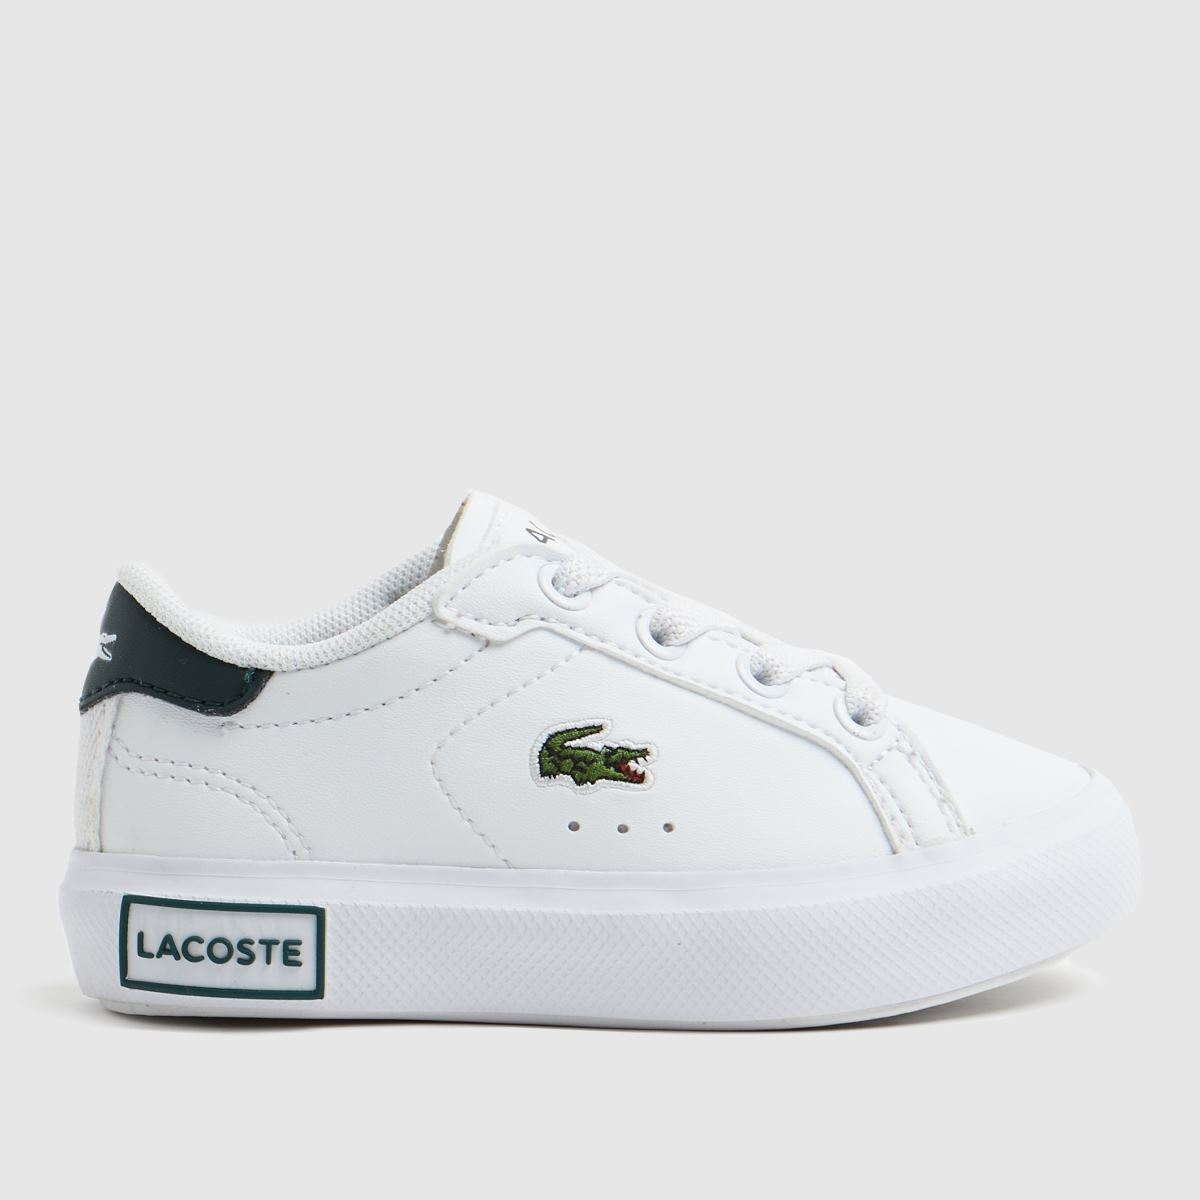 Lacoste White & Green Powercourt Trainers Toddler